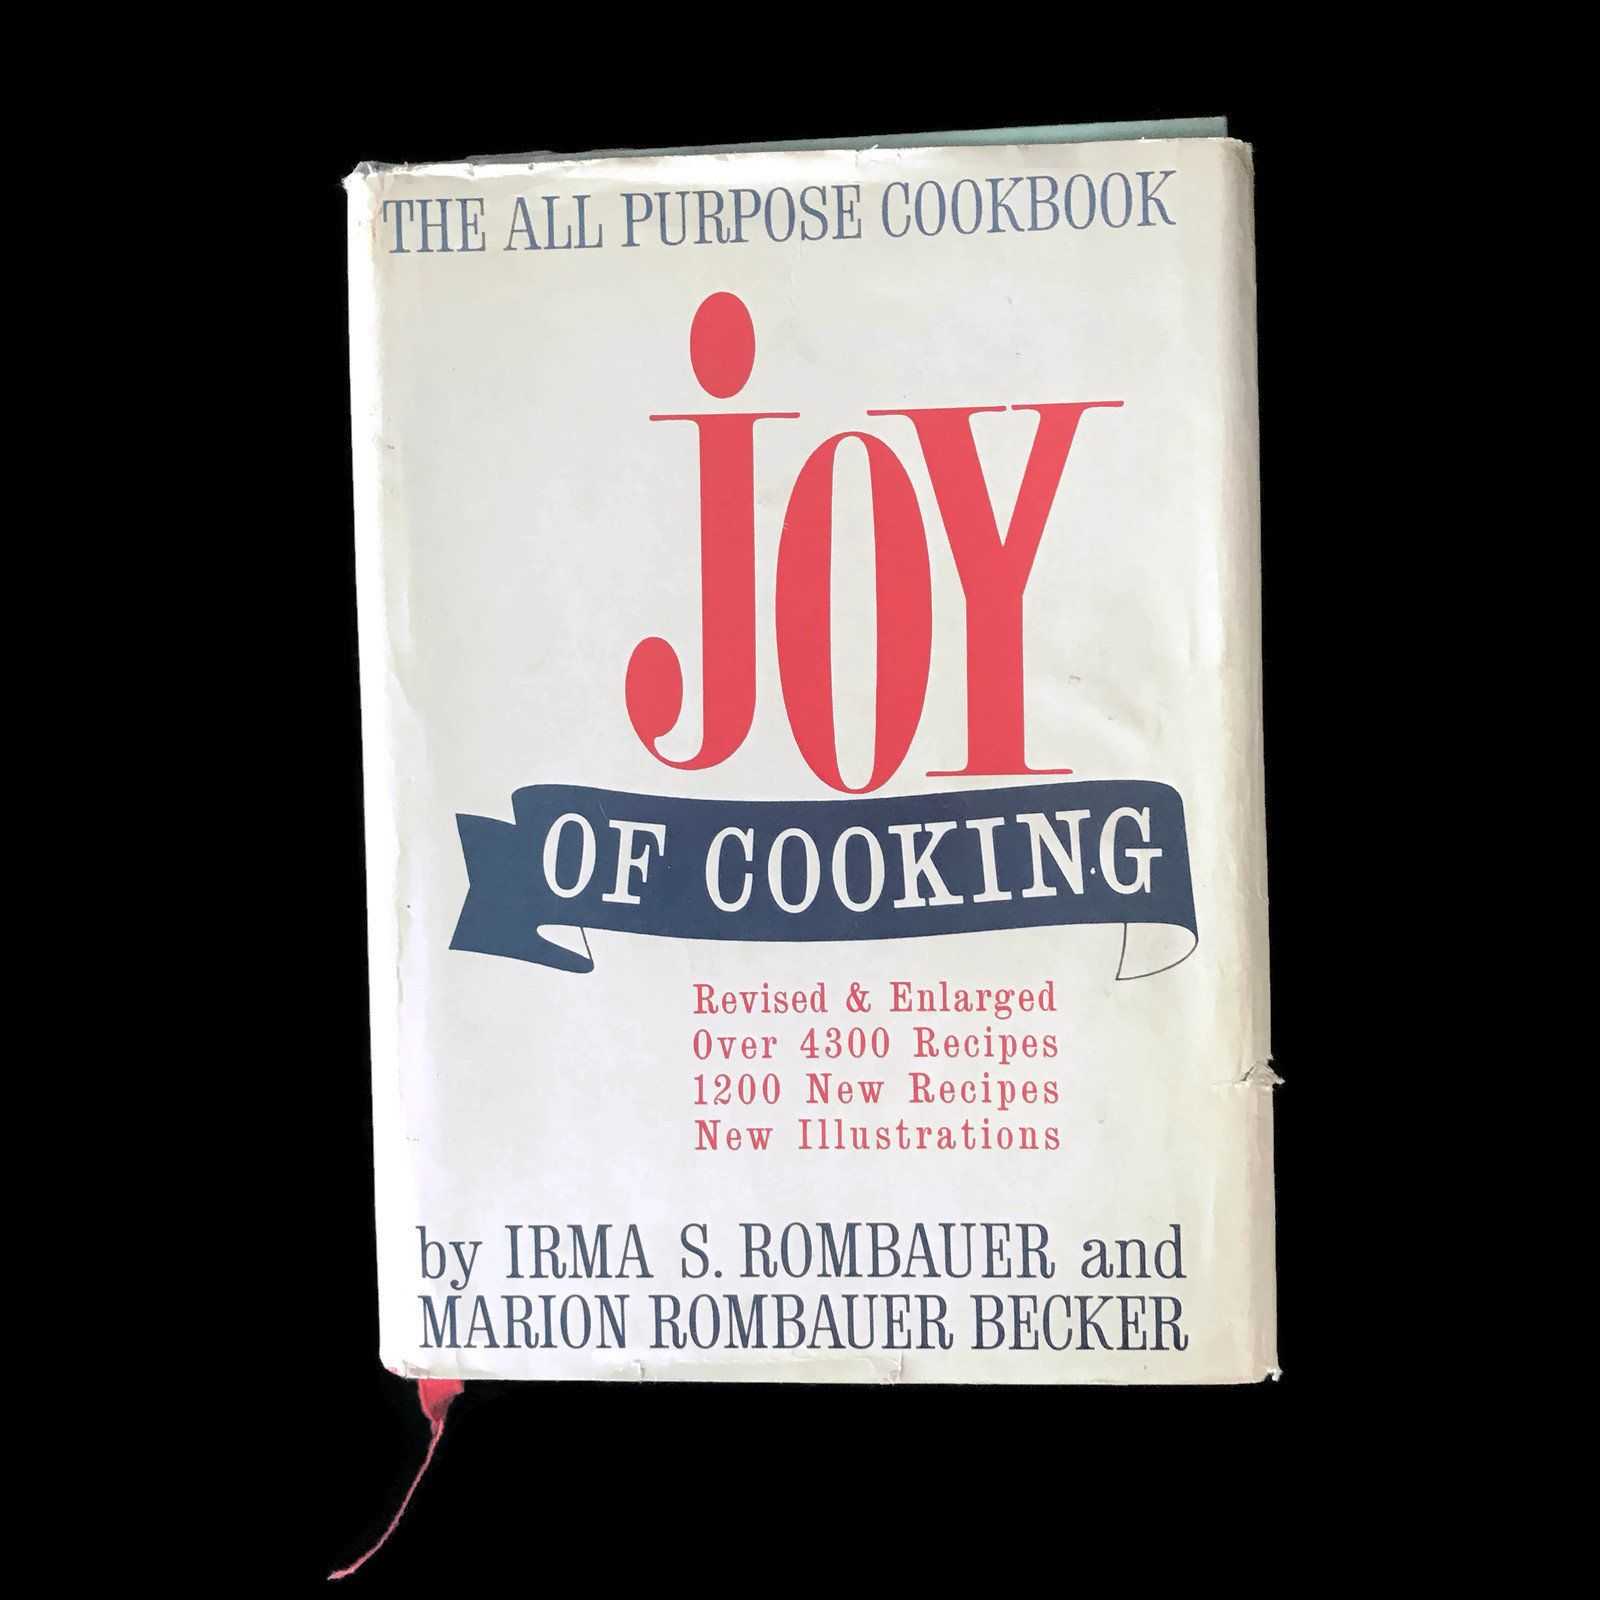 Vintage Cookbook 1964 Joy of Cooking Cookbook Irma Rombauer Recipe Book Vintage Kitchen Recipes Cook Book Household Hints Entertaining Ideas #cookingandhouseholdhints